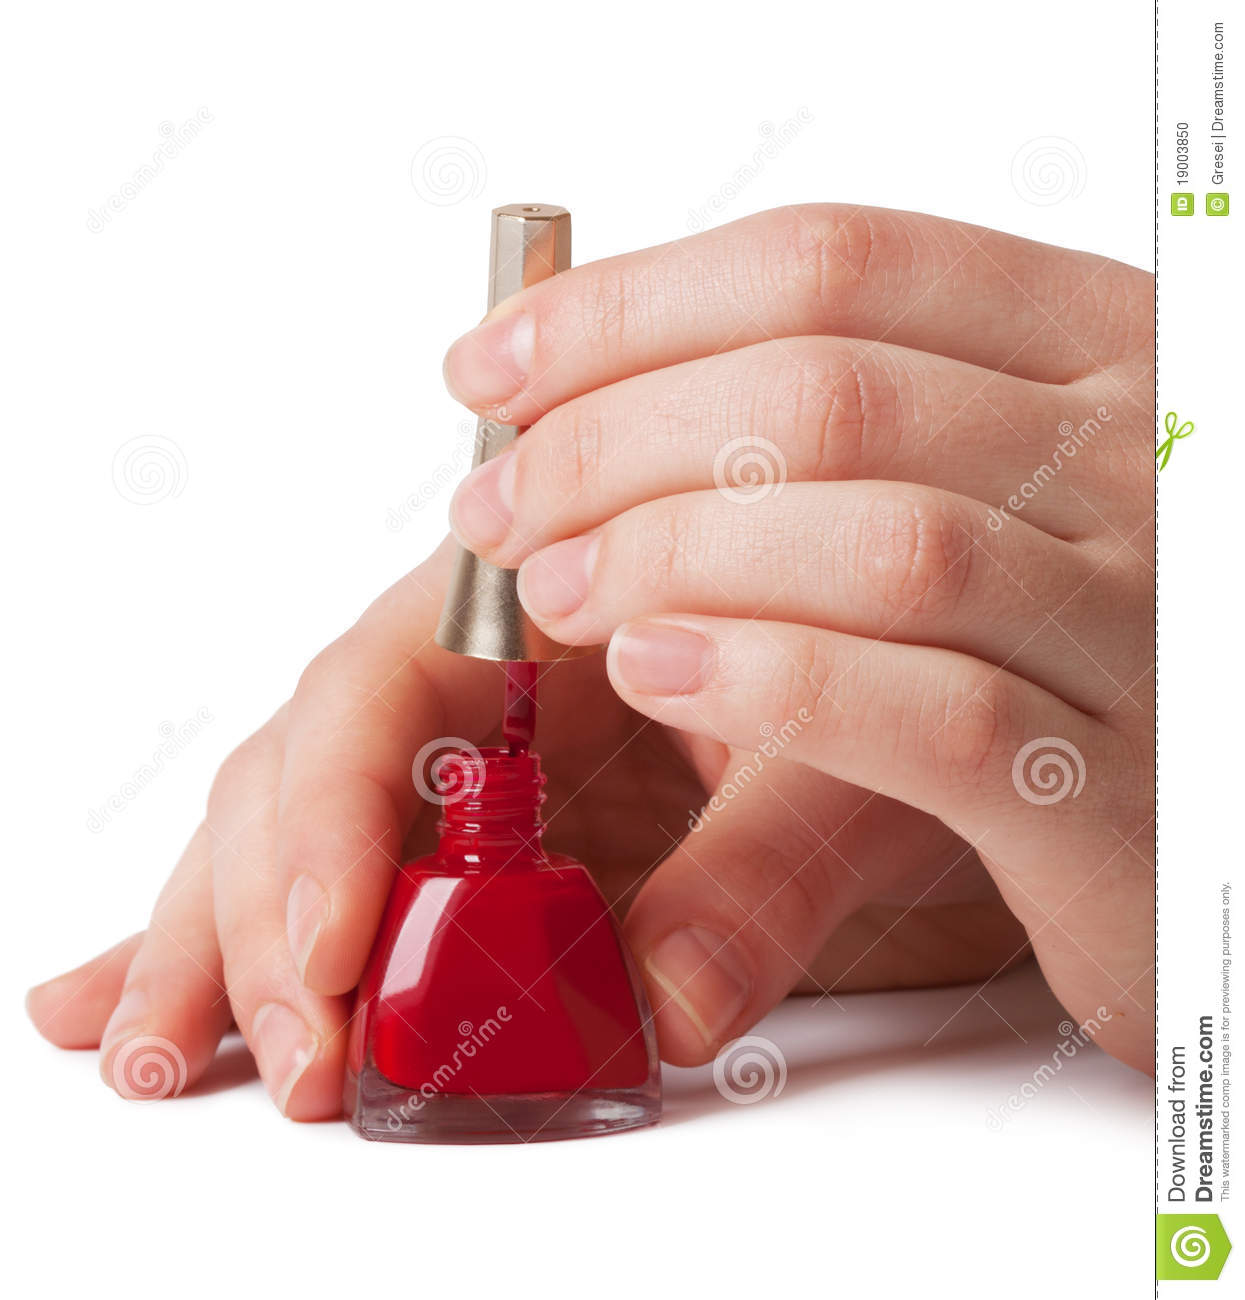 Red Nail Polish On Thumb: Manicurist Applying Red Nail Polish On Female Fing Stock